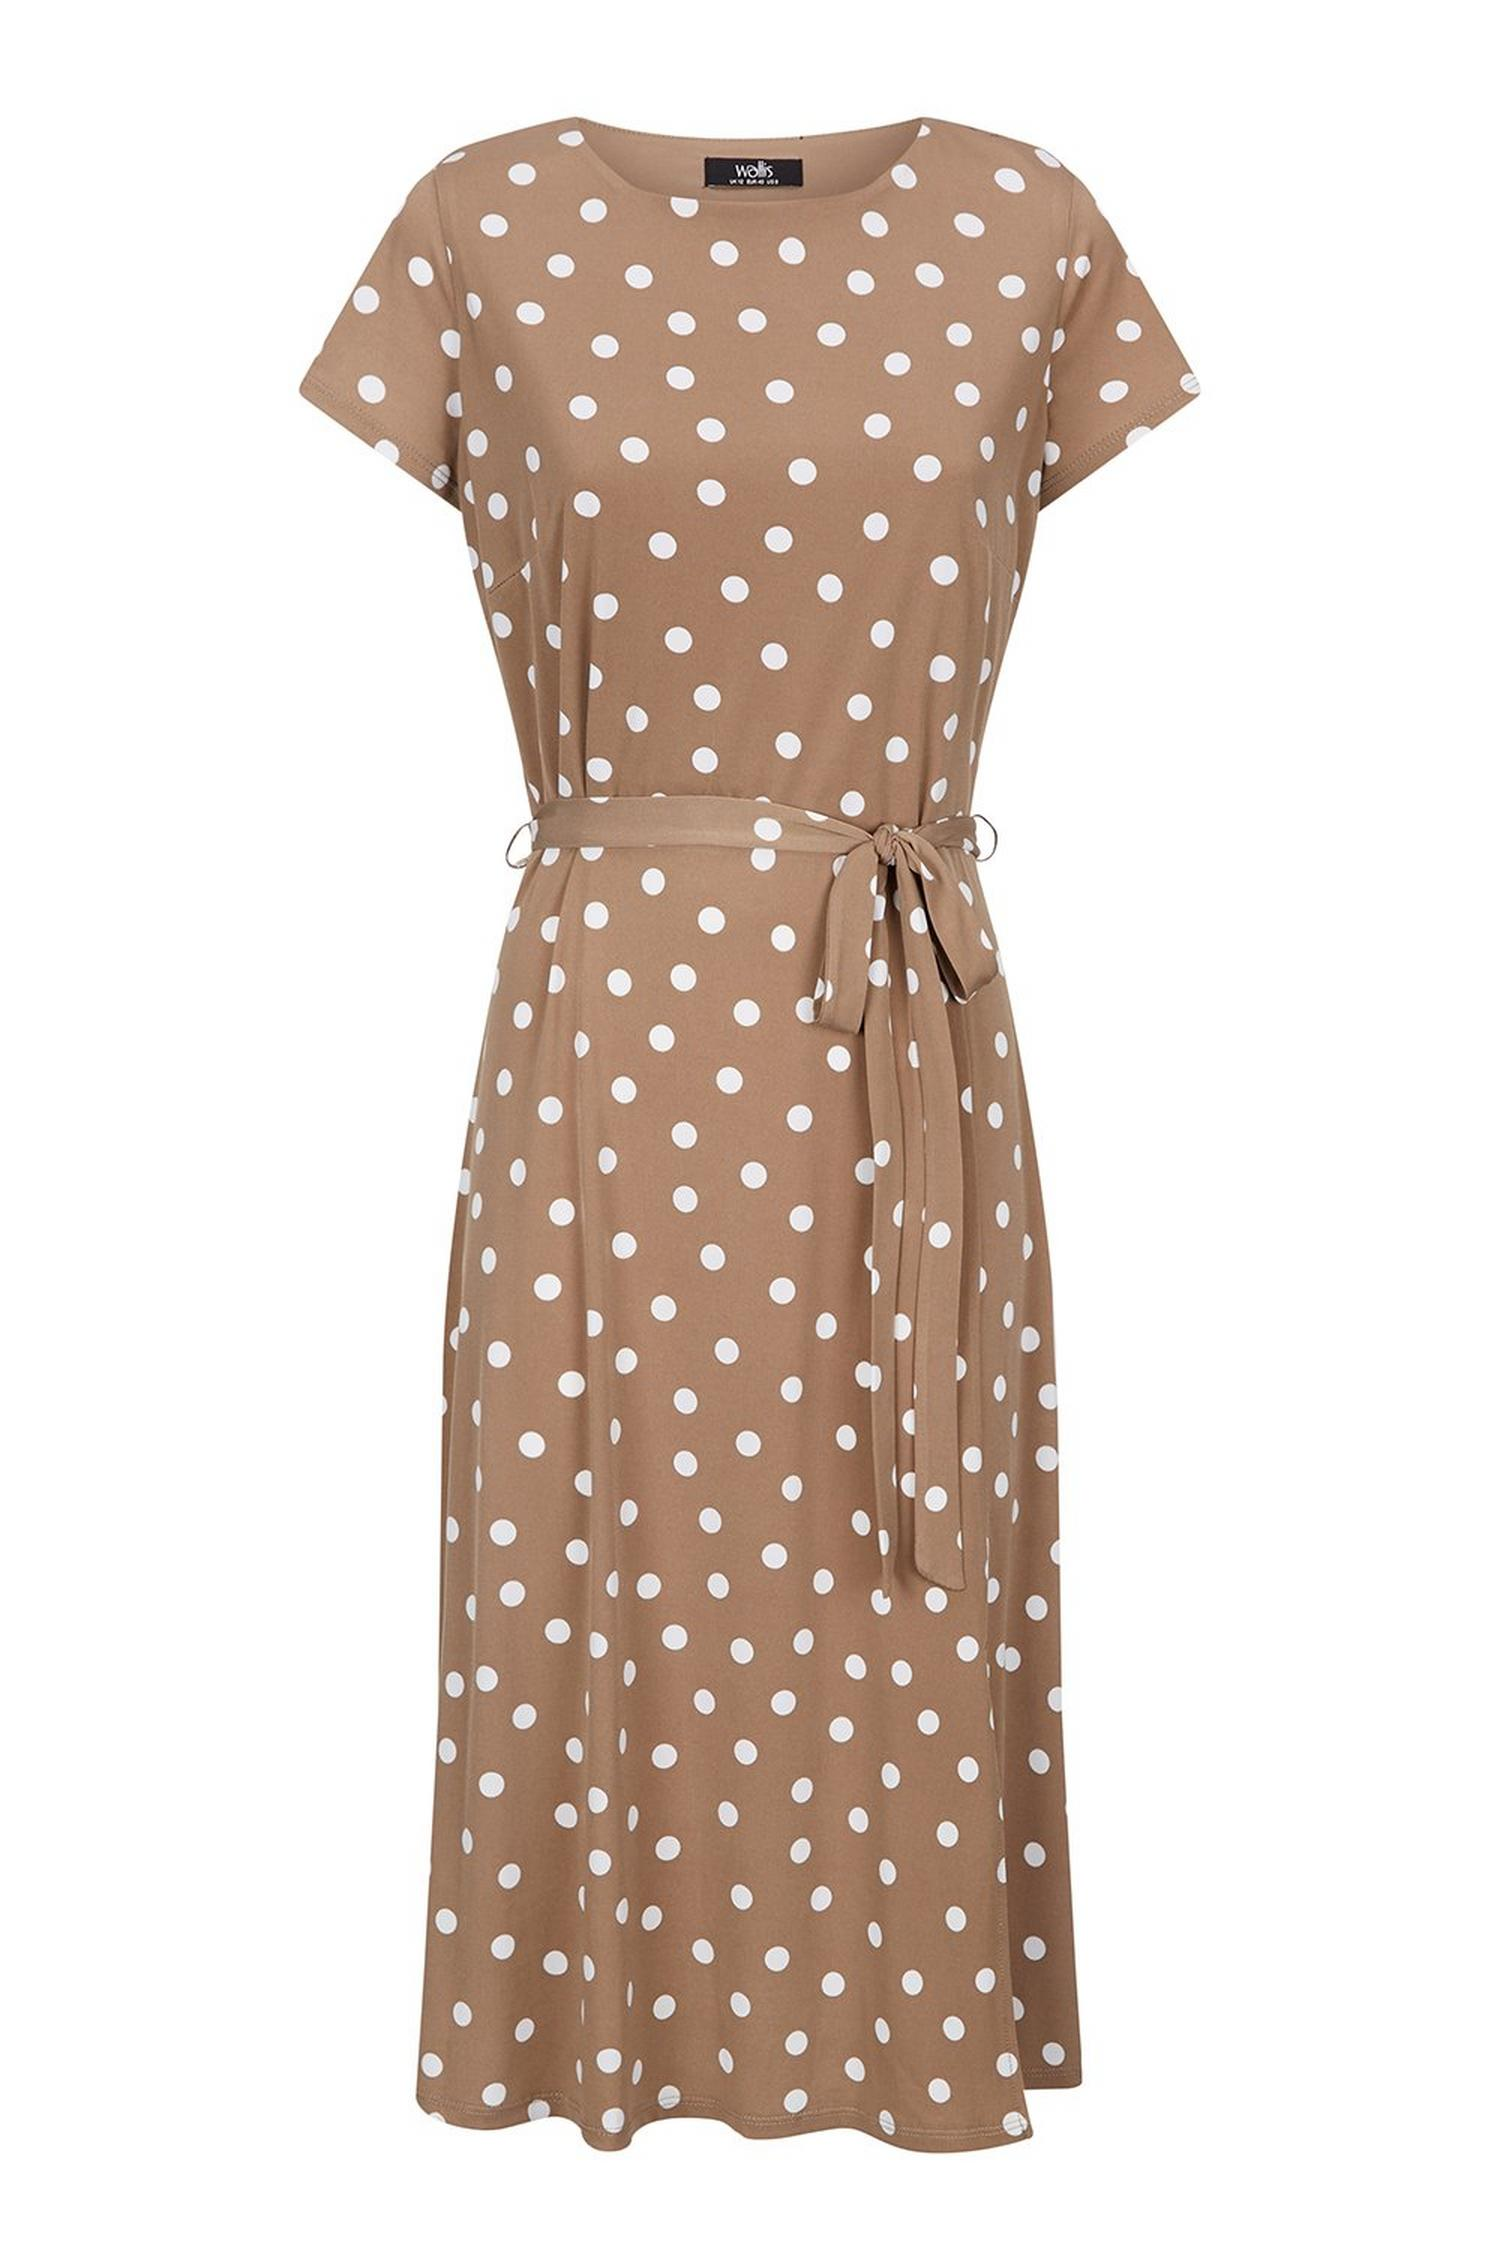 103 Taupe Polka Dot Dress image number 2